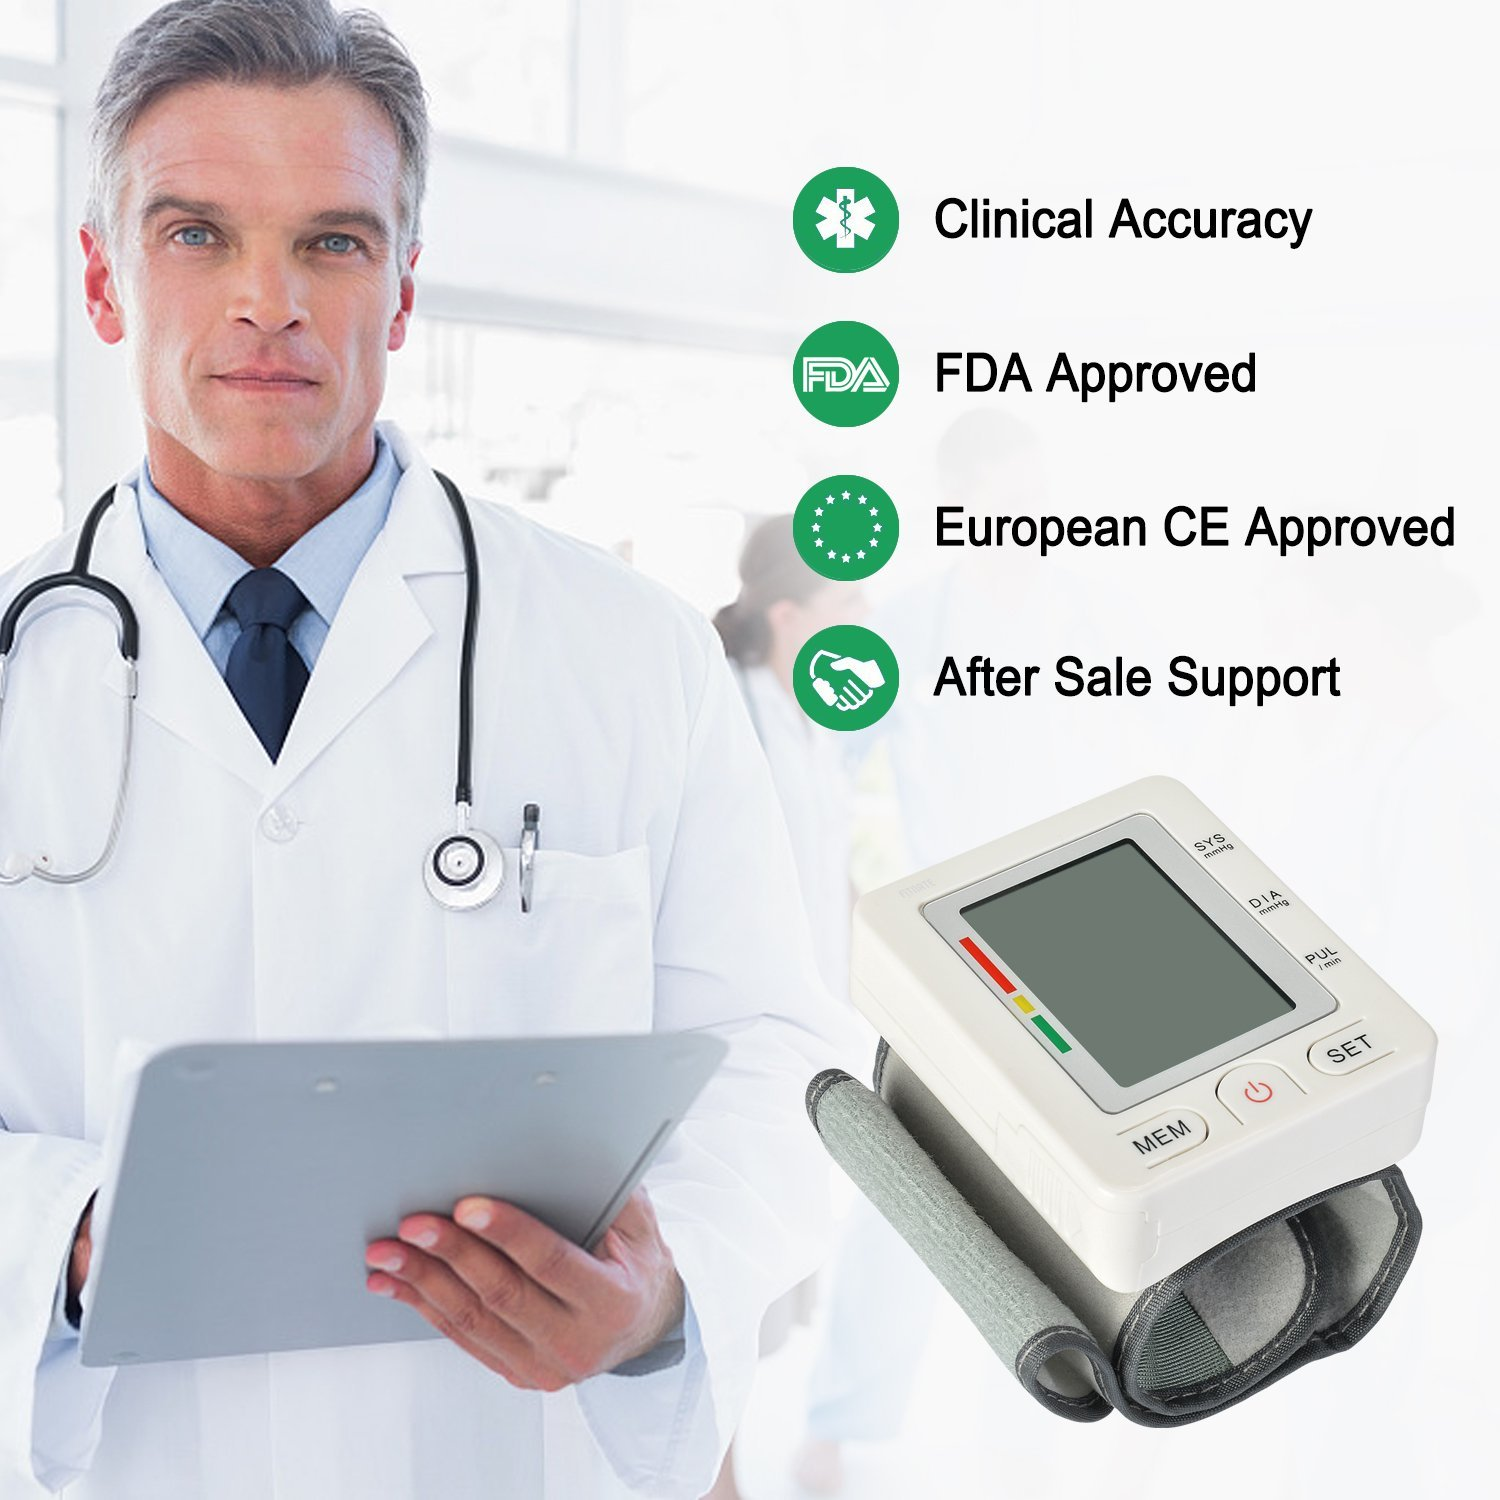 Fitnate FDA CE Approved Automatic Wrist Blood Pressure Monitor, Portable Irregular Heartbeat BP Monitor, Dual User Modes, 2*90 Memory Recall, Adjustable Wrist Cuff, IHB Indicator Accurate for Health: